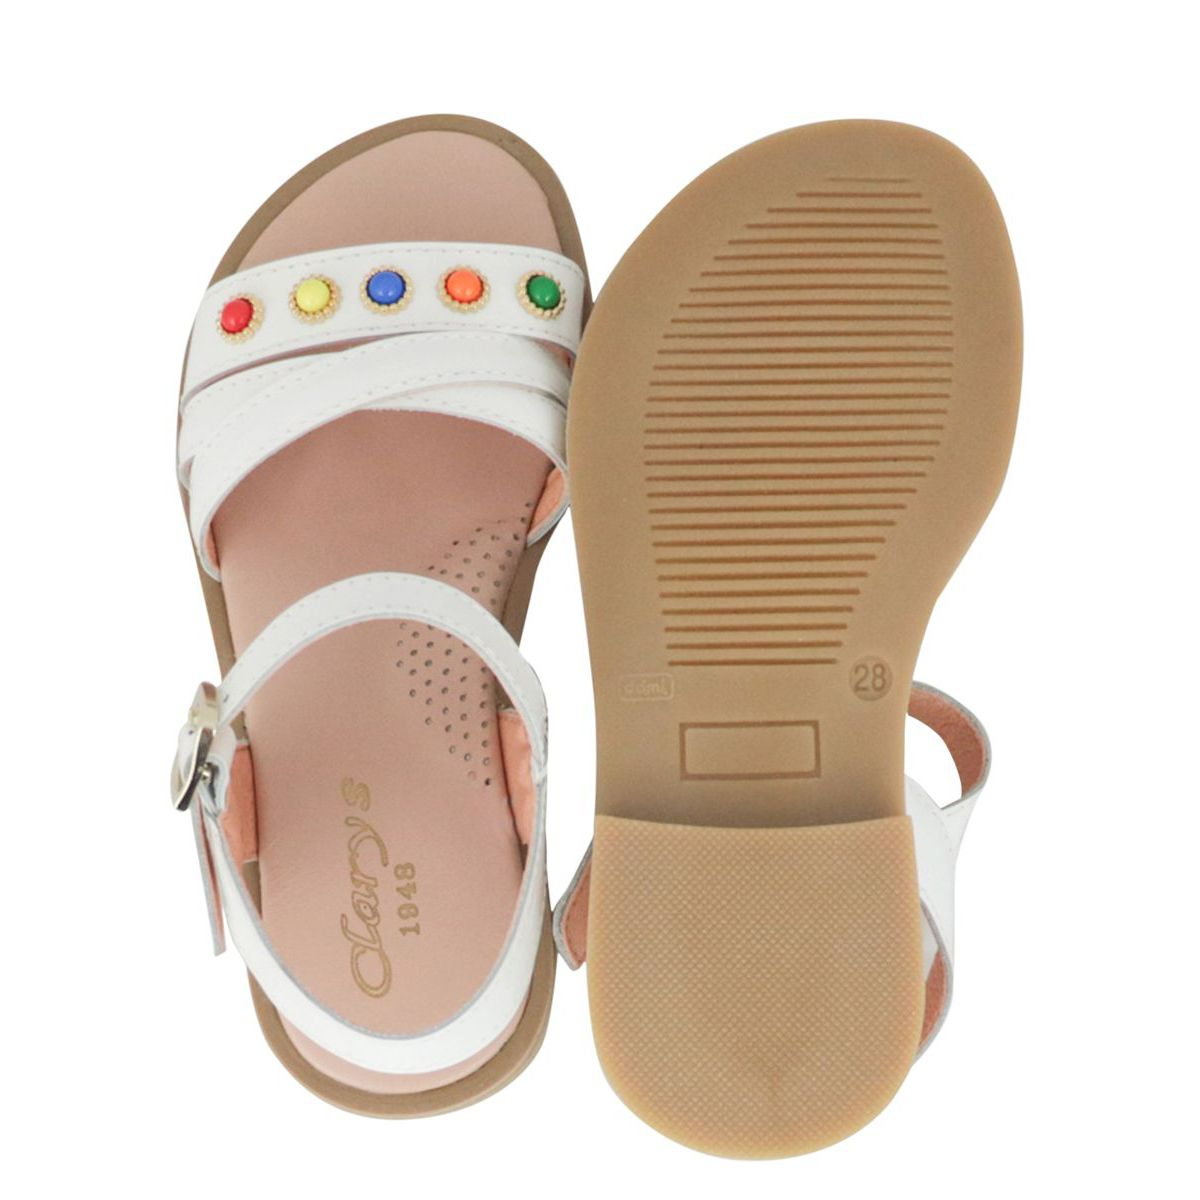 Leather sandals with buckle and multicolor inserts White Clarys